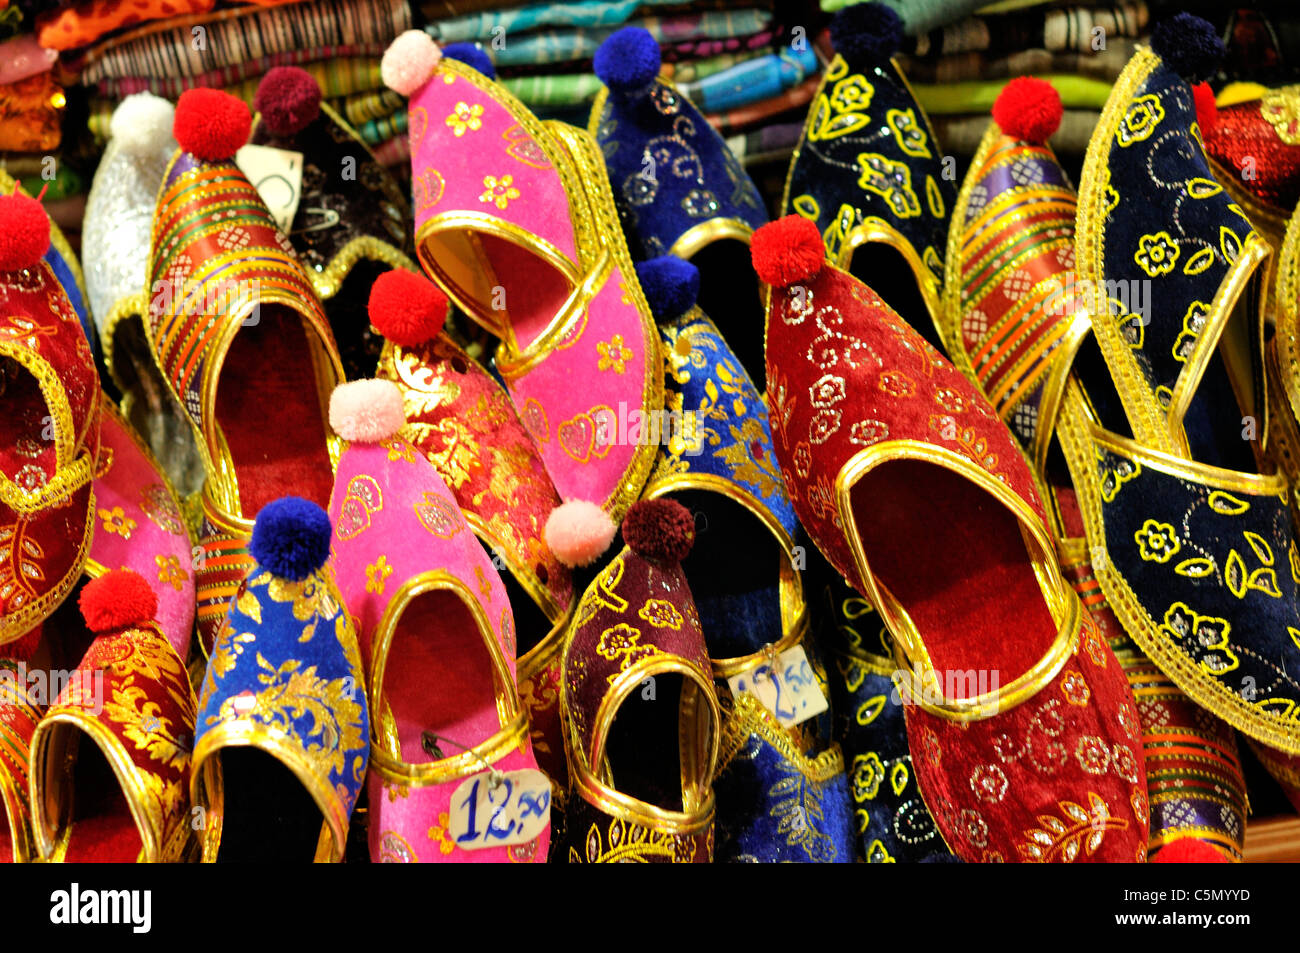 Shoes Istanbul Turkey Stockfotos und bilder Kaufen Alamy